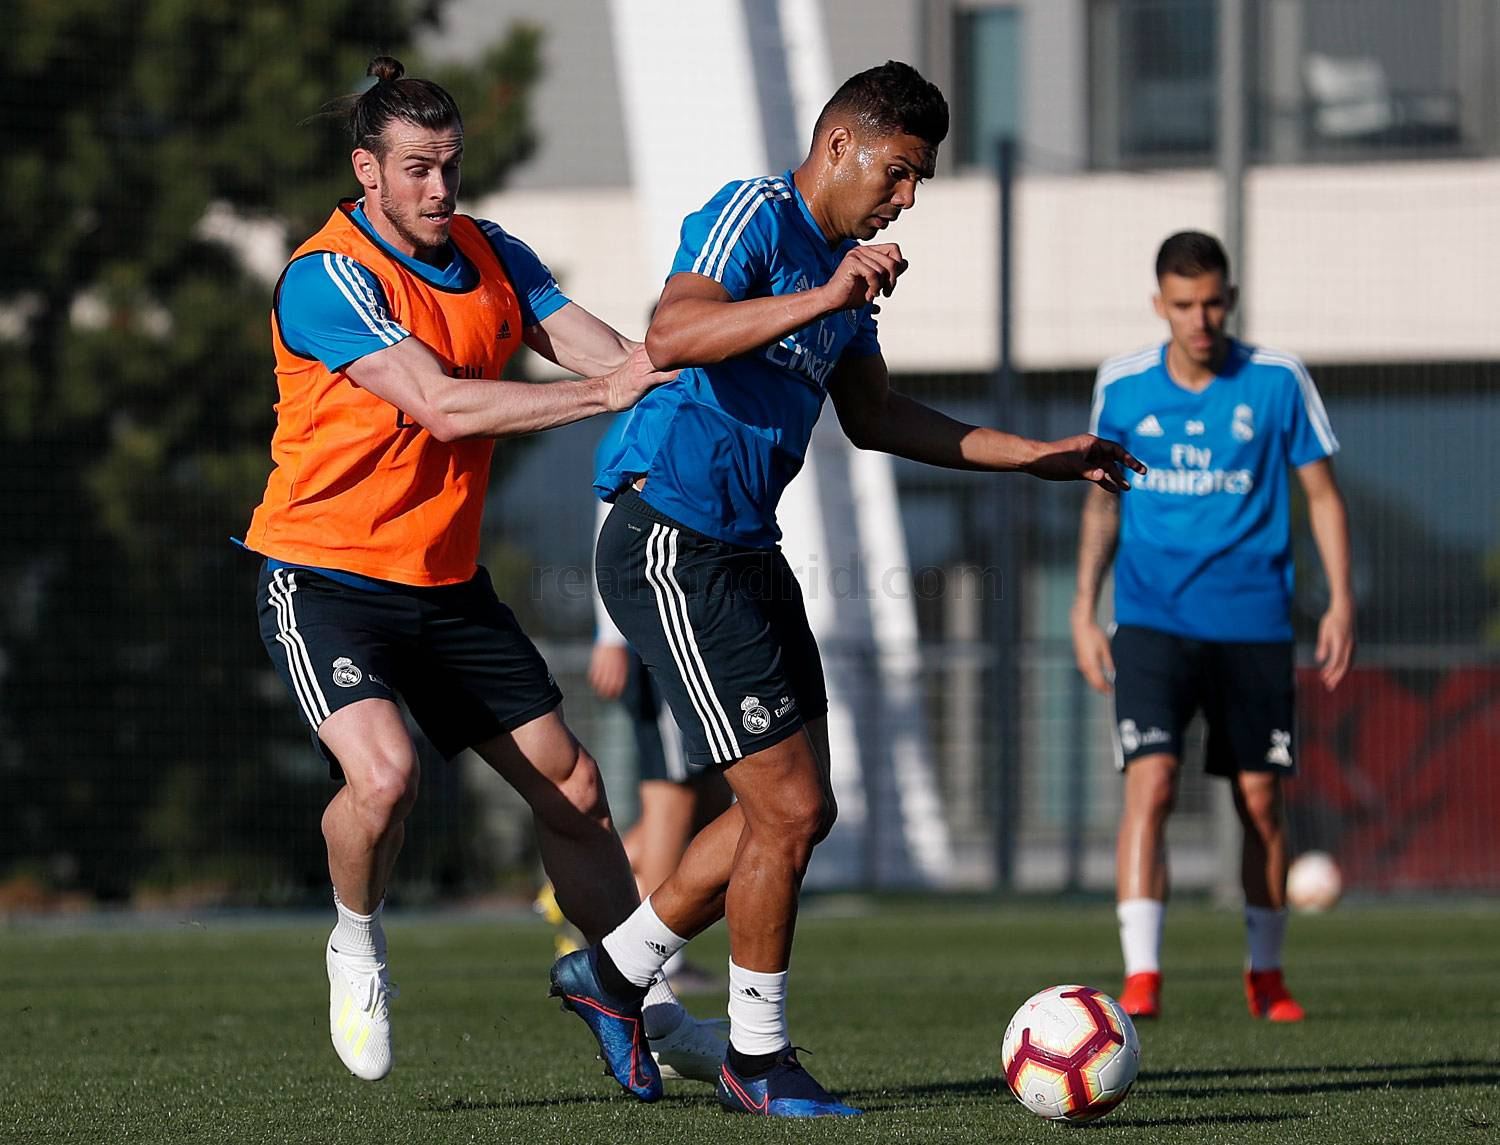 Real Madrid - Entrenamiento del Real Madrid - 28-03-2019